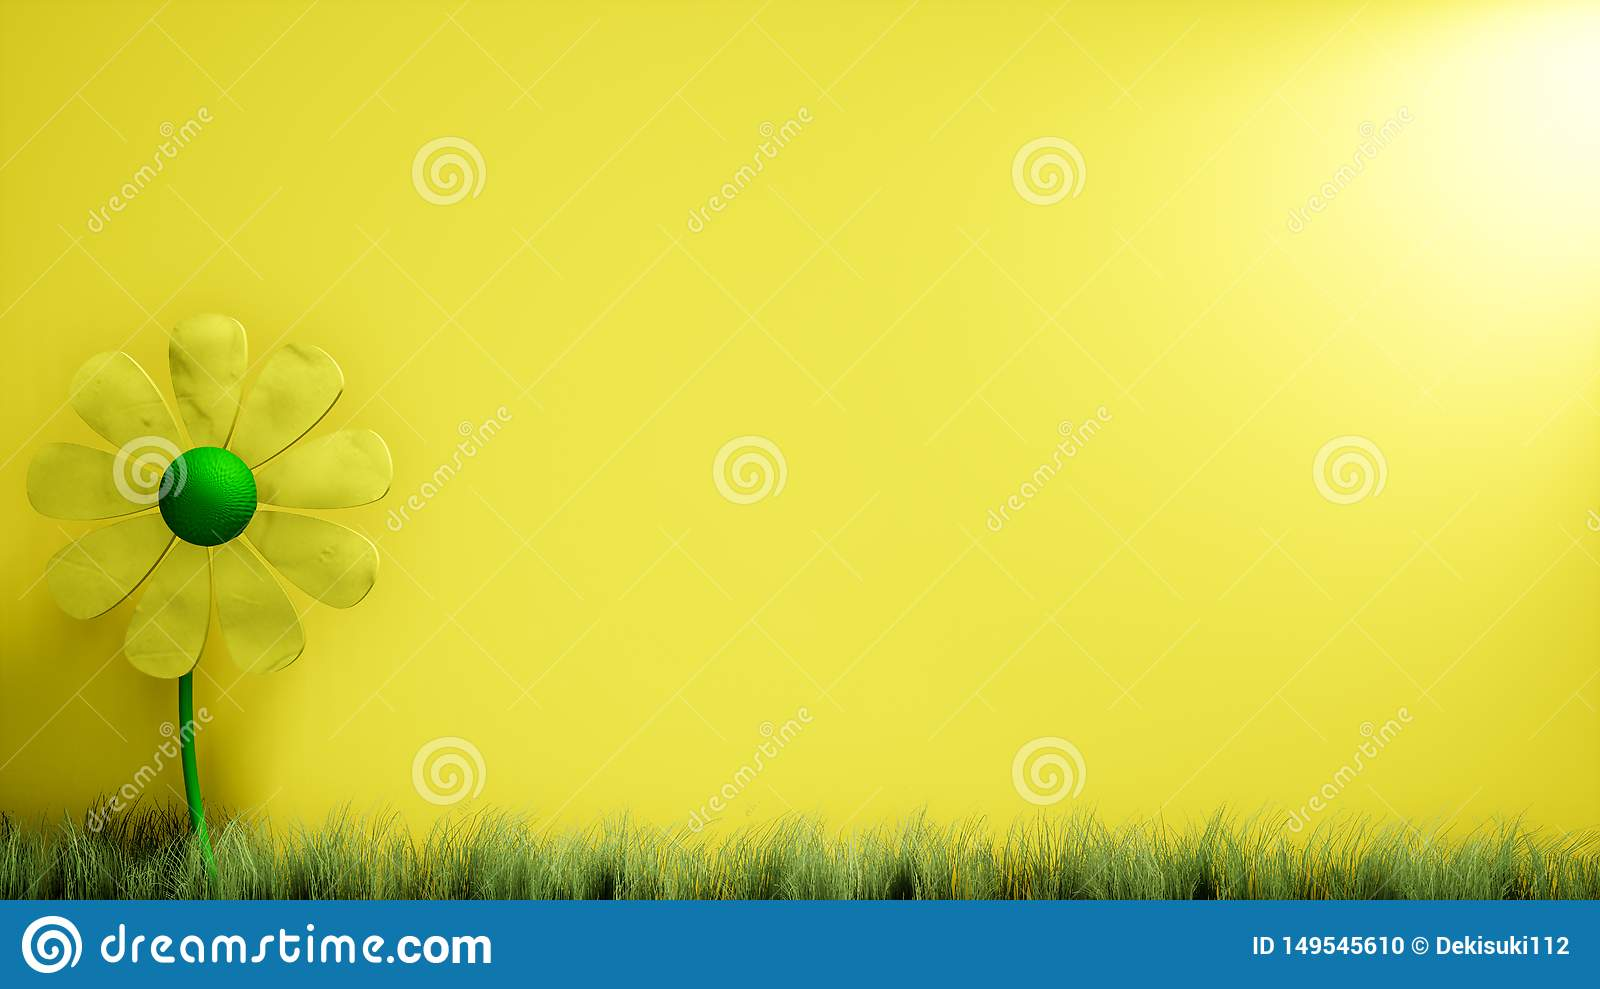 3d Yellow Abstract Flower Illustration Background Wallpaper